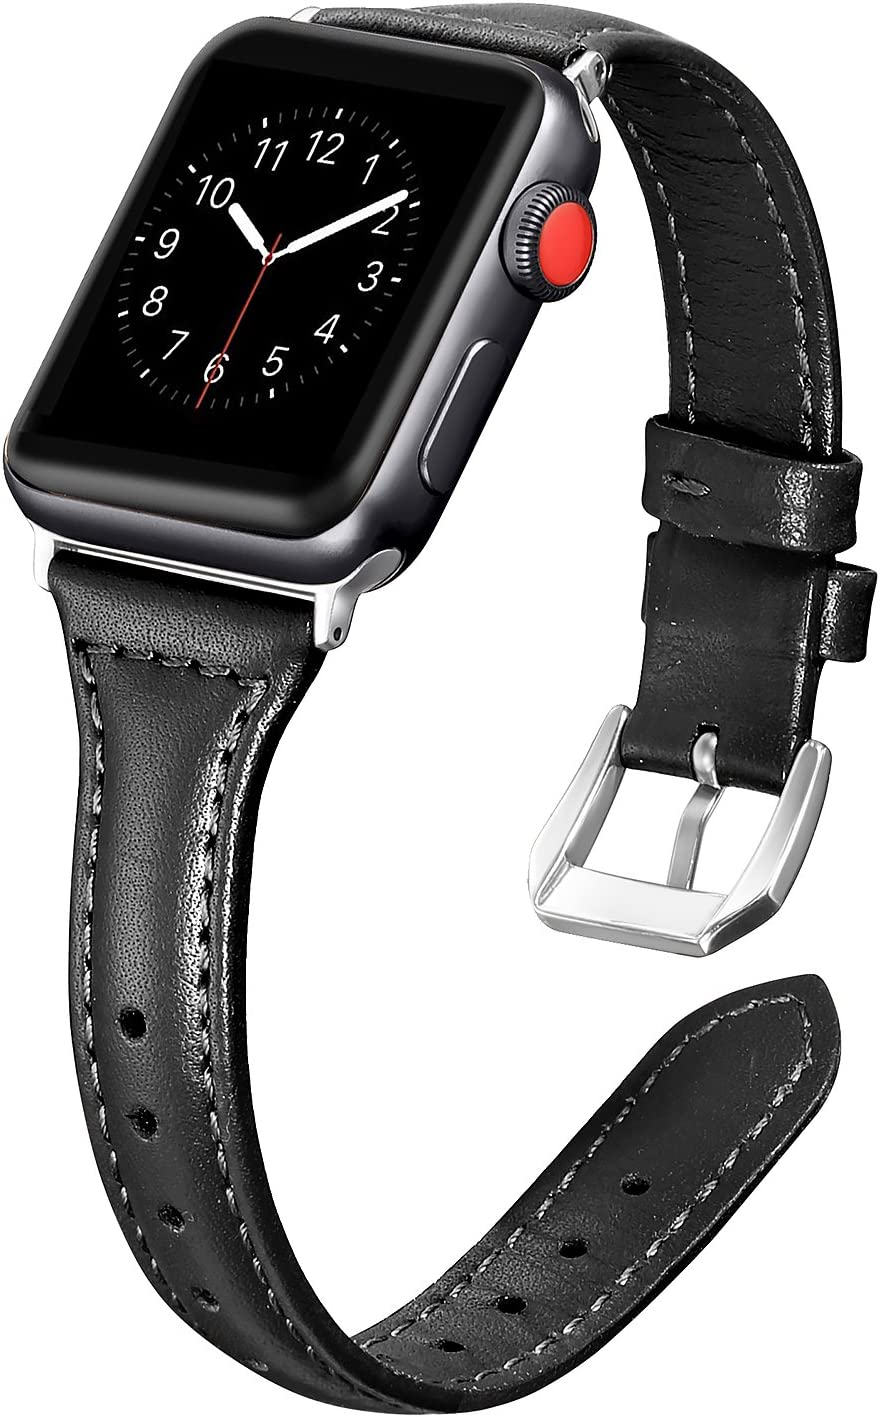 Secbolt Leather Bands Compatible Apple Watch Band 38mm 40mm Iwatch Series 6 5 4 3 2 1 SE Slim Replacement Wristband Strap Stainless Steel Buckle, Black